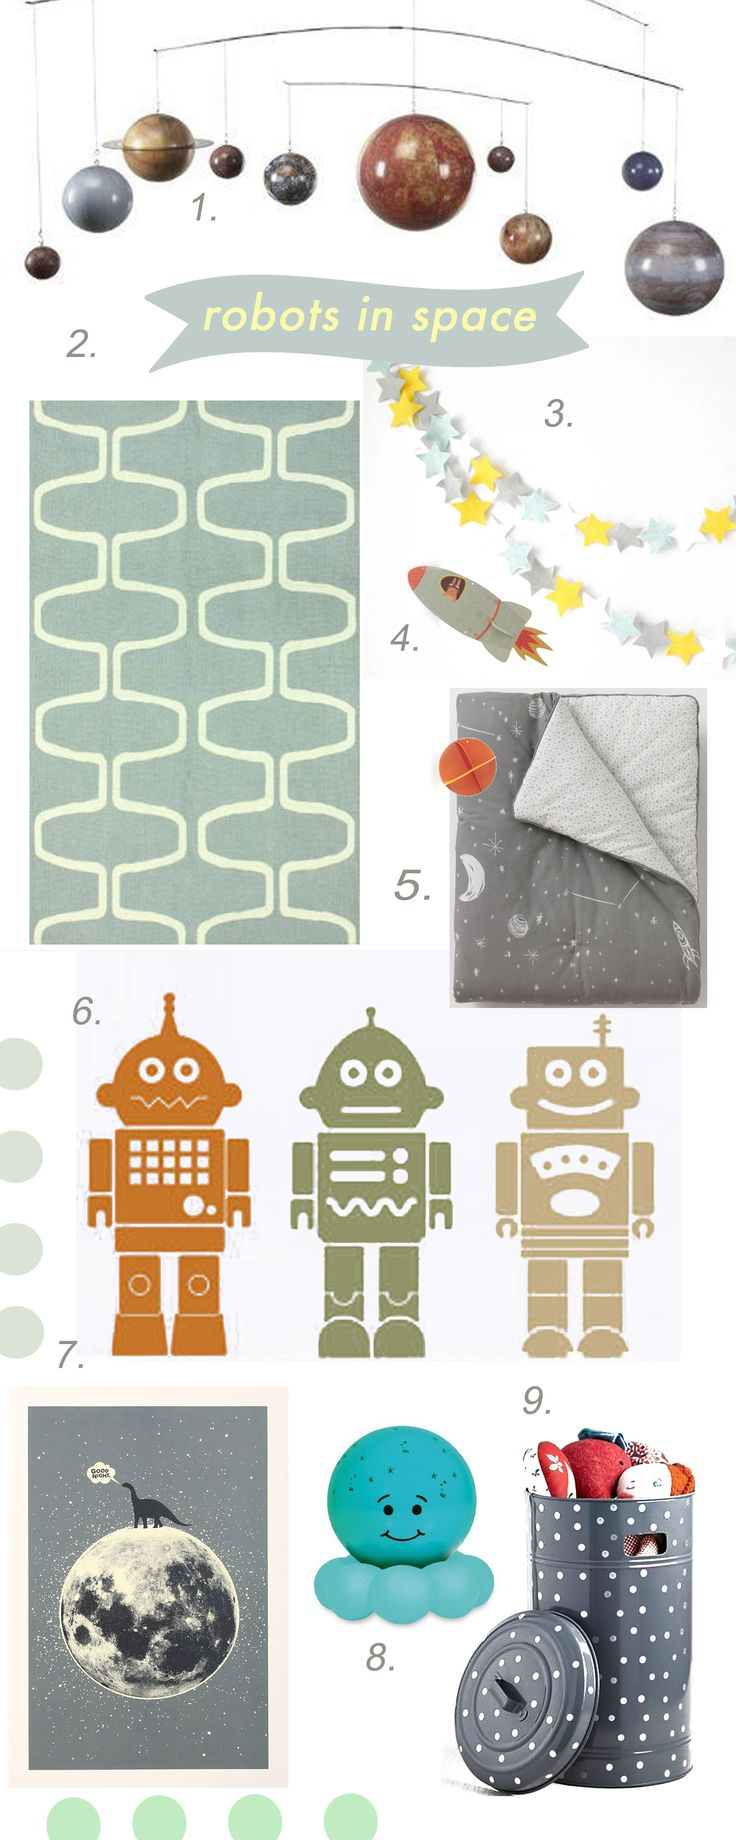 Robots in Space Themed Nursery // by Chachi Loves Design, Los Angeles // for sources visit: http://chachilovesdesign.tumblr.com/